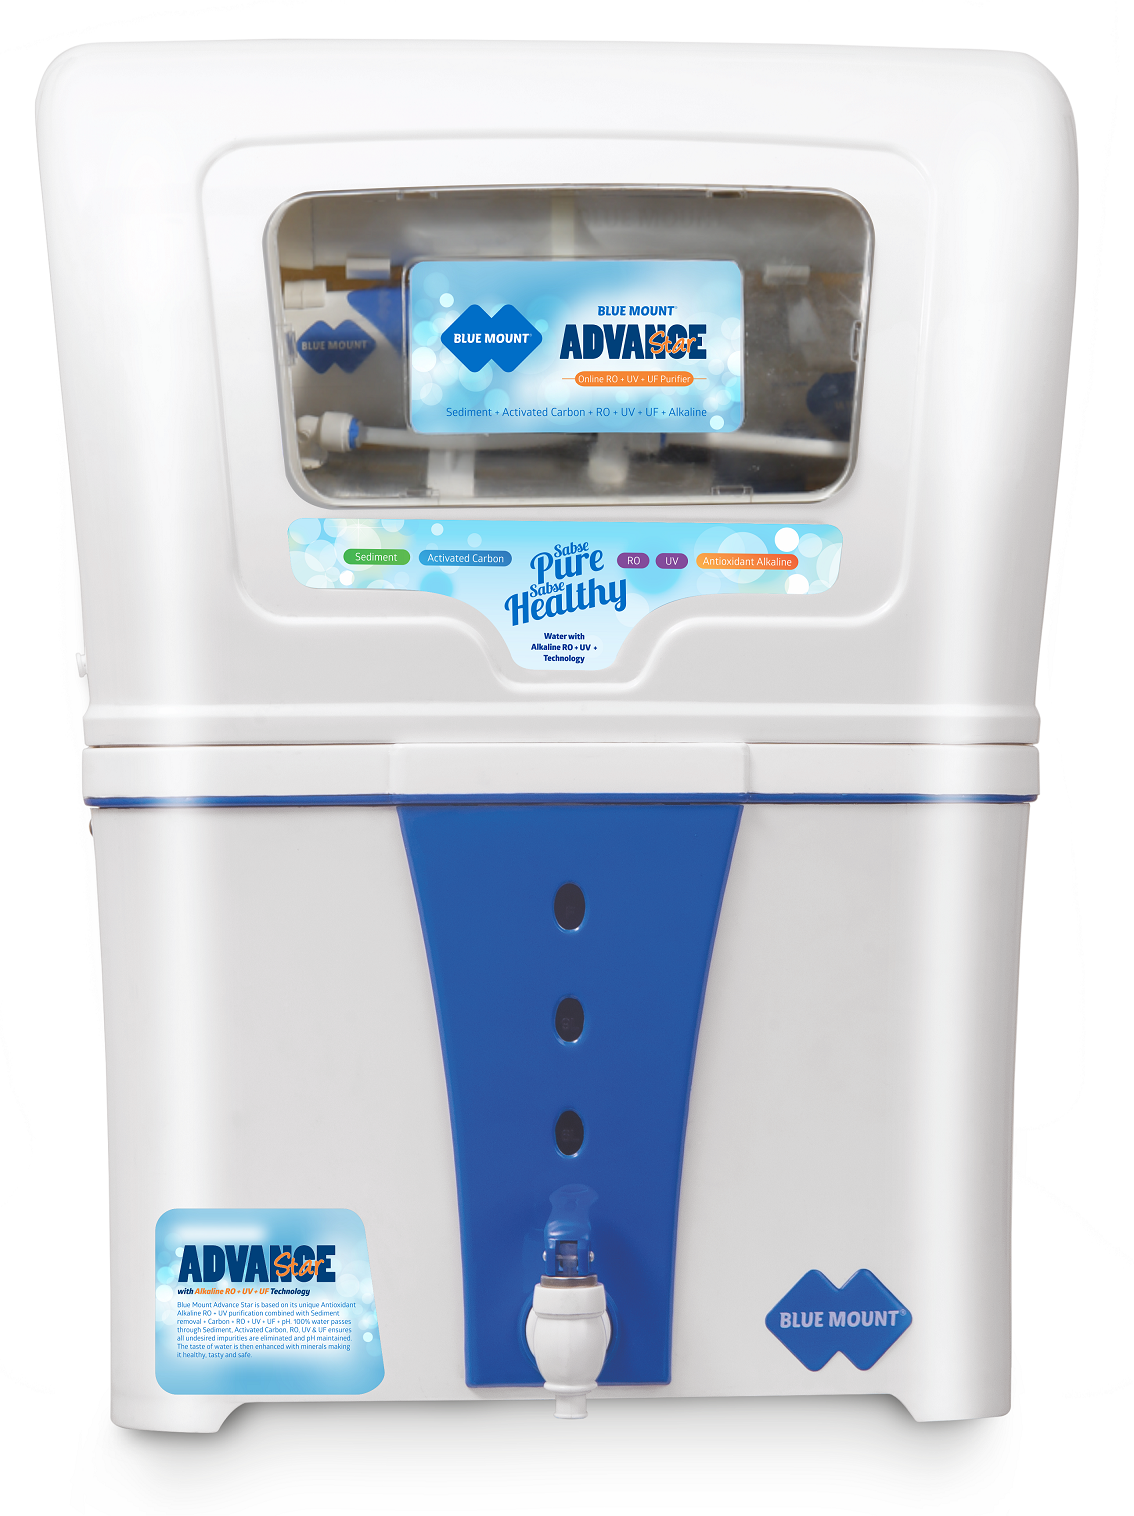 Blue Mount Advance Star Alkaline RO + UF + UV Water Purifier